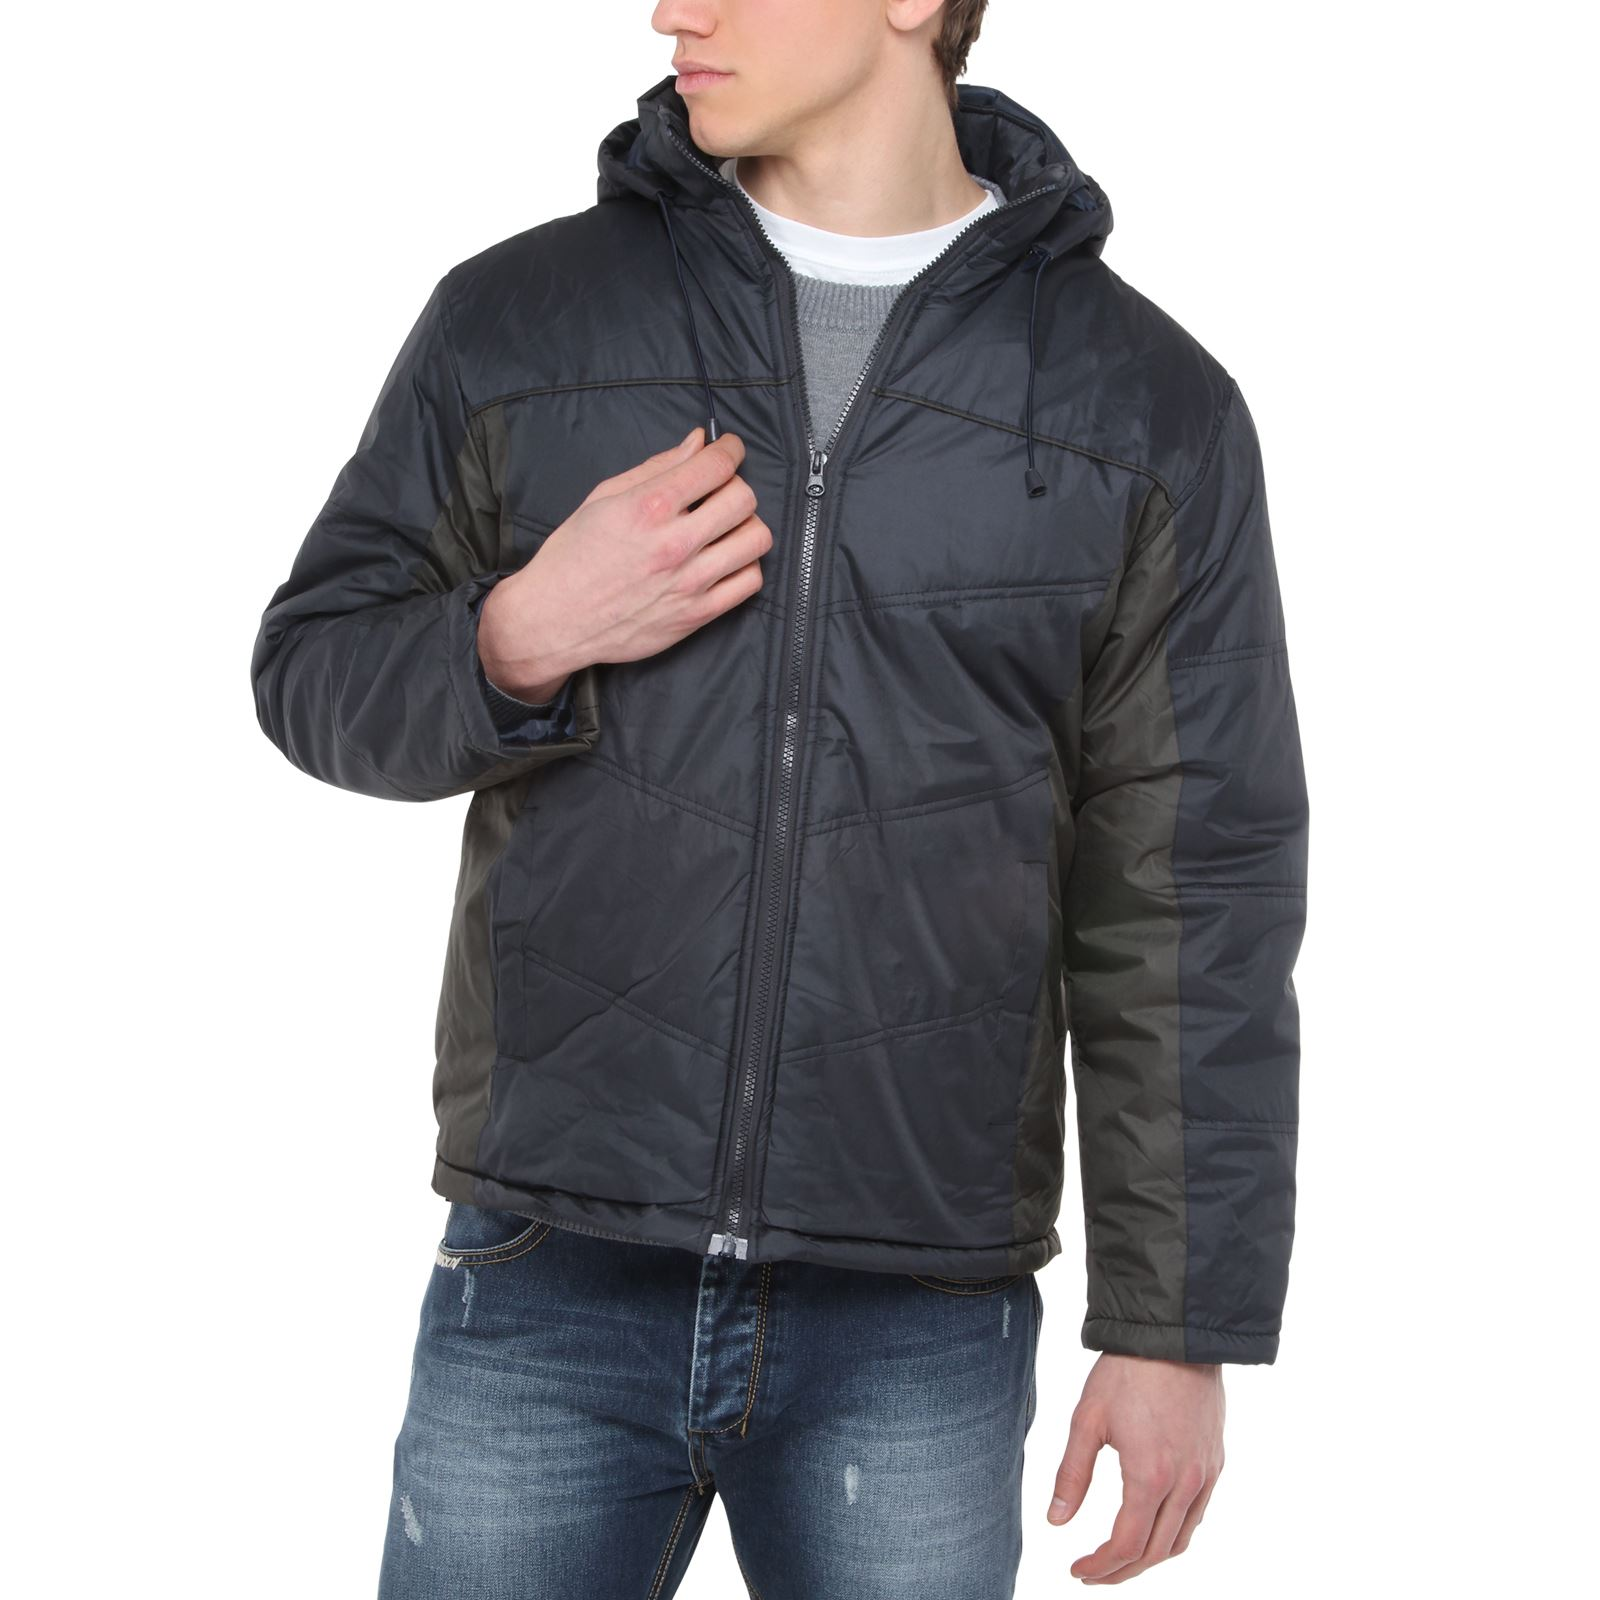 Stay Warm in a Pretty and Practical Women's Quilted Lightweight Jacket Women's quilted lightweight jackets provide warmth and protection from the elements on cold days. These stylish fall and winter outerwear choices keep you warm and toasty during outdoor activities.